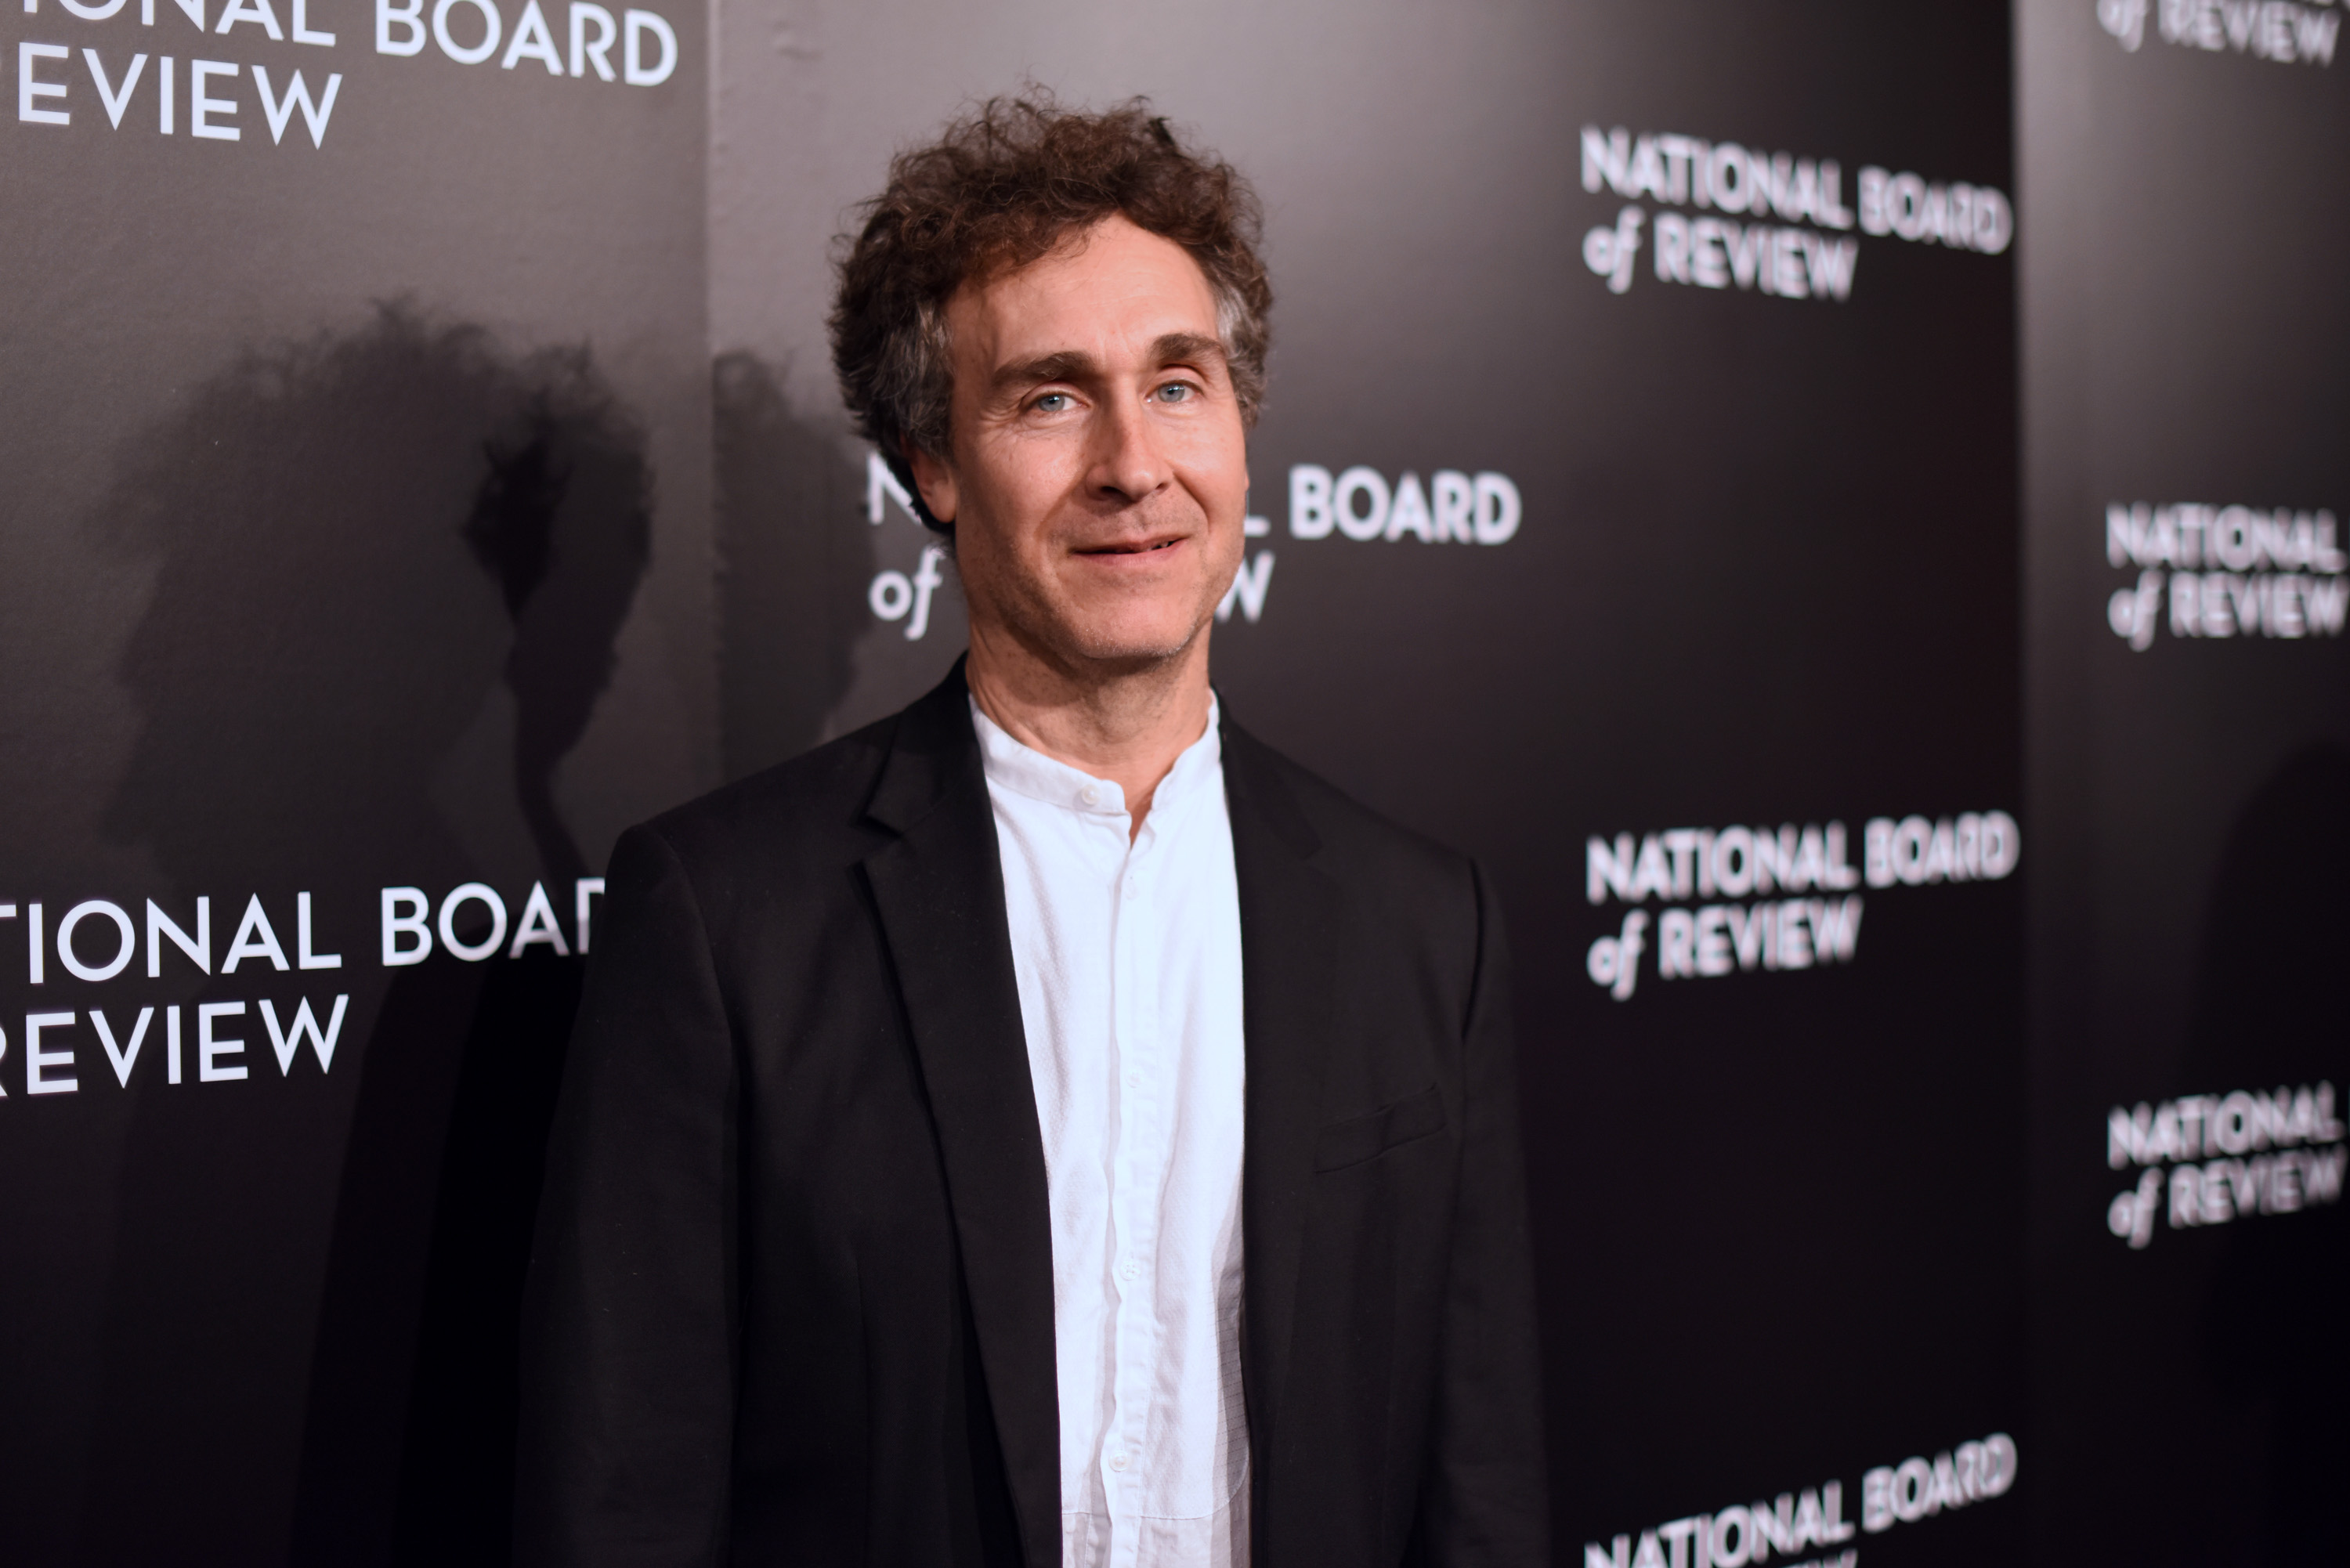 National Board of Review Awards Gala, New York, America - 05 Jan 2016